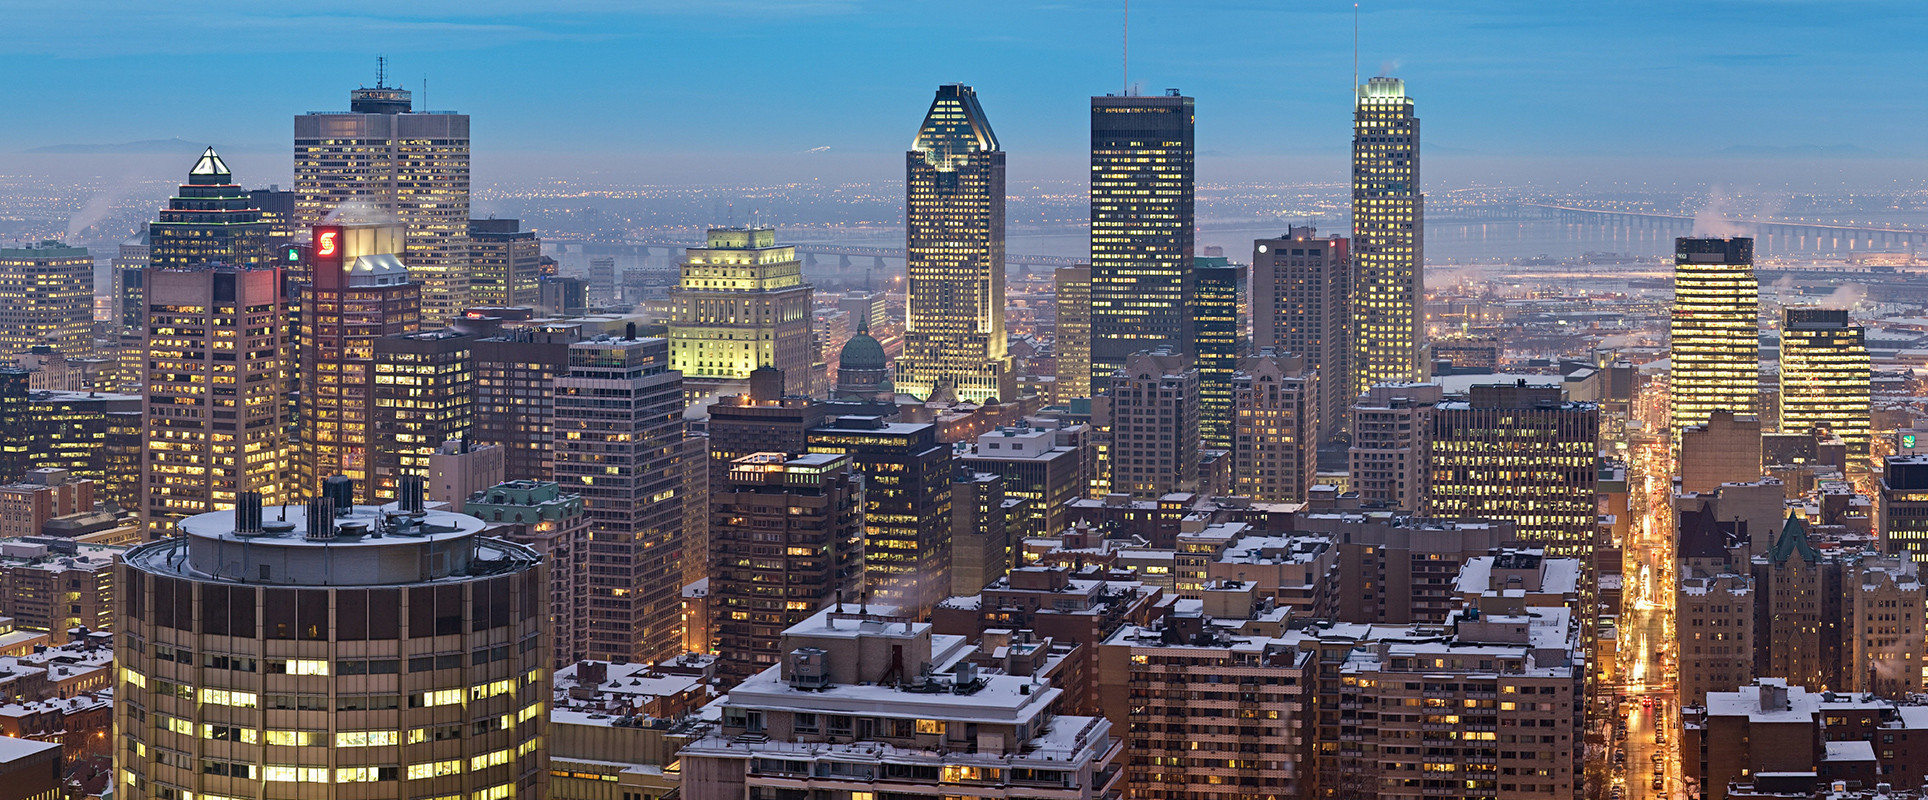 Quebec IIP reopens on January 19, 2015